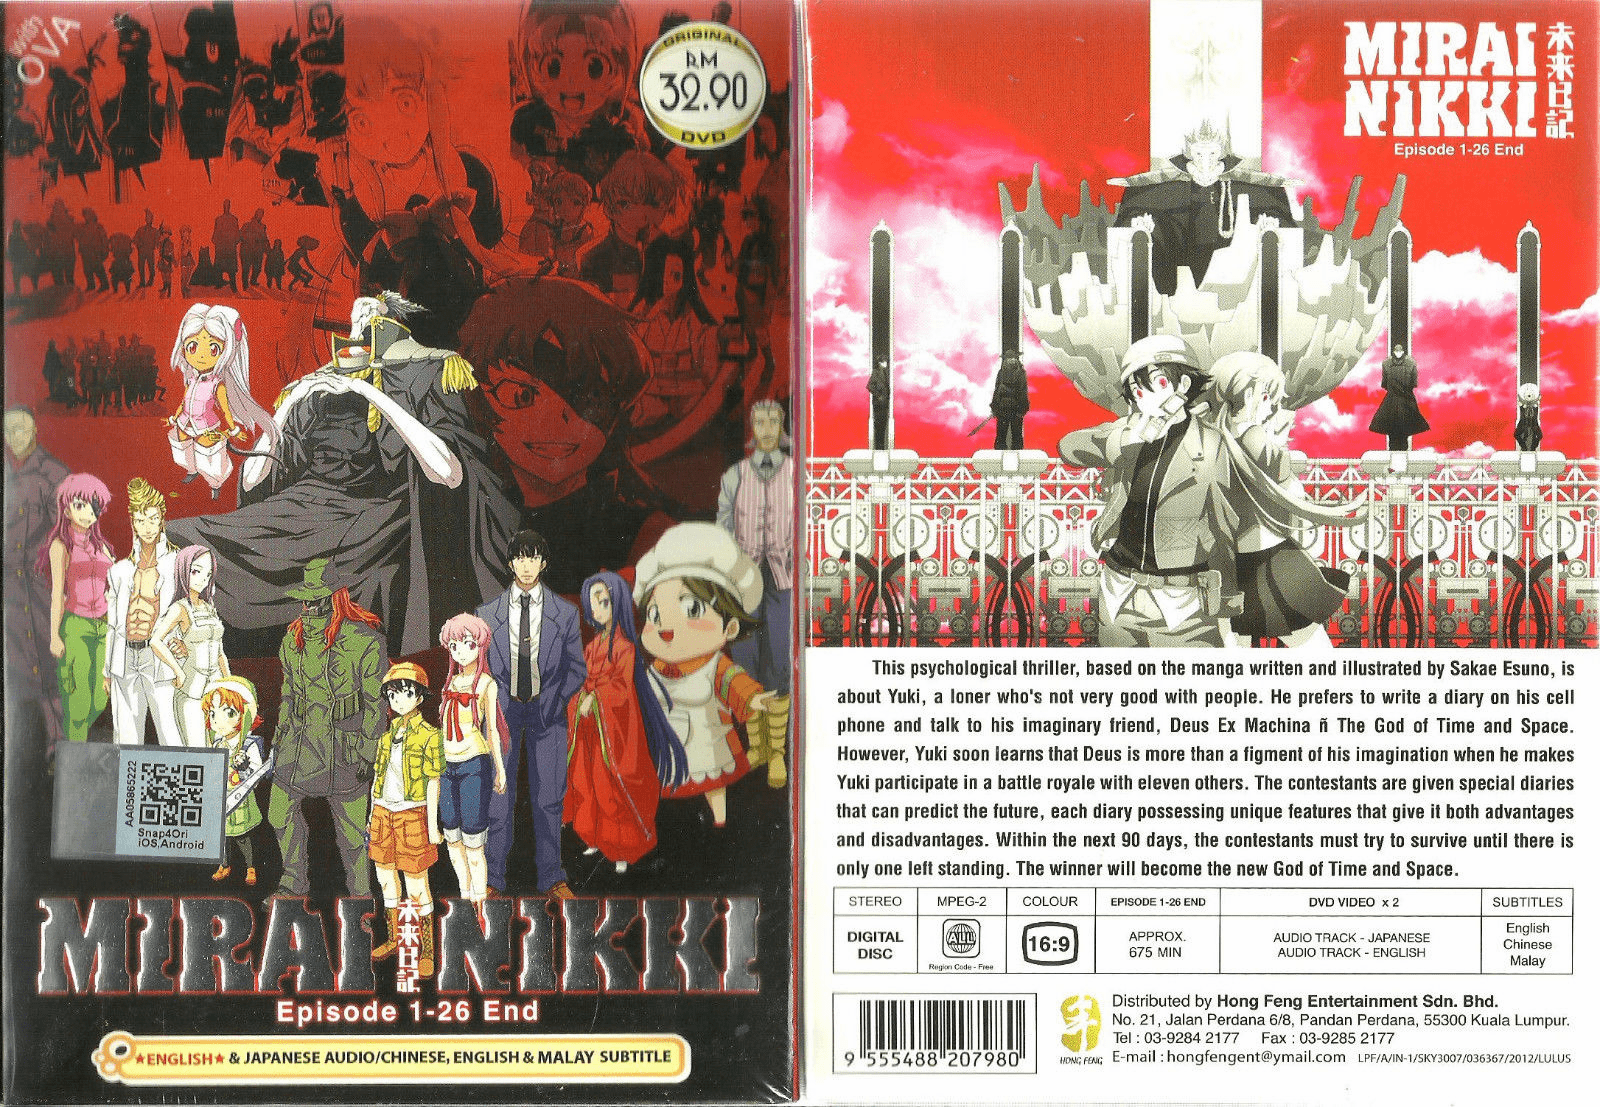 Mirai Nikki The Future Diary DVD Complete 1-26 (ENG)+OVA (English Dubbed)